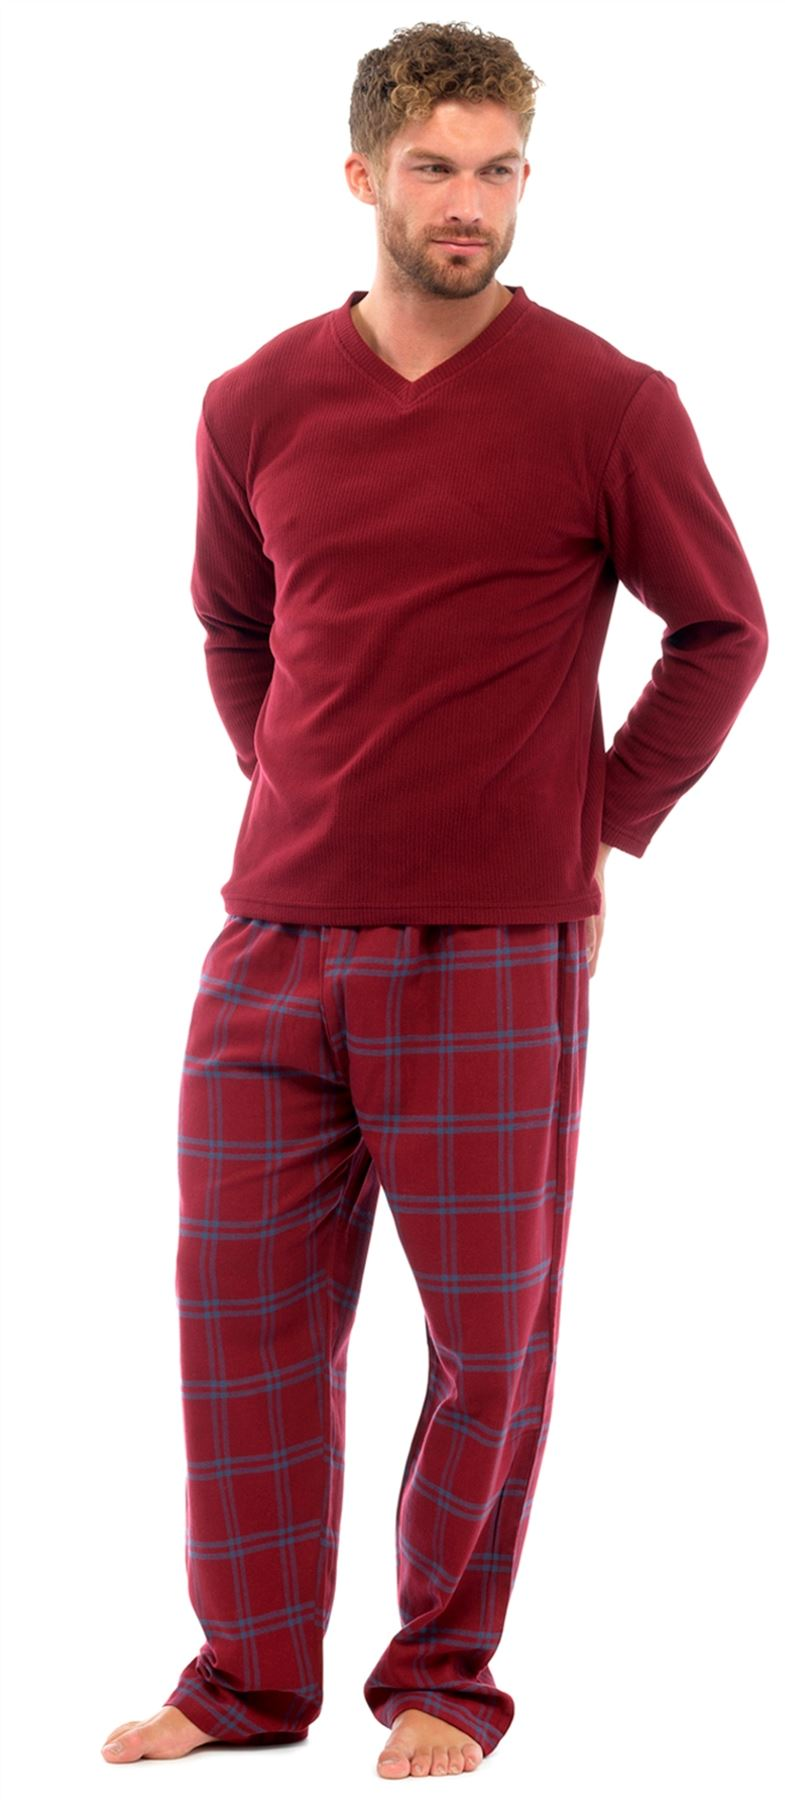 Shop online at Gustwiller's Clothing Co. for men's pajamas, robes and thermal underwear. Free shipping available, small-town service guaranteed.